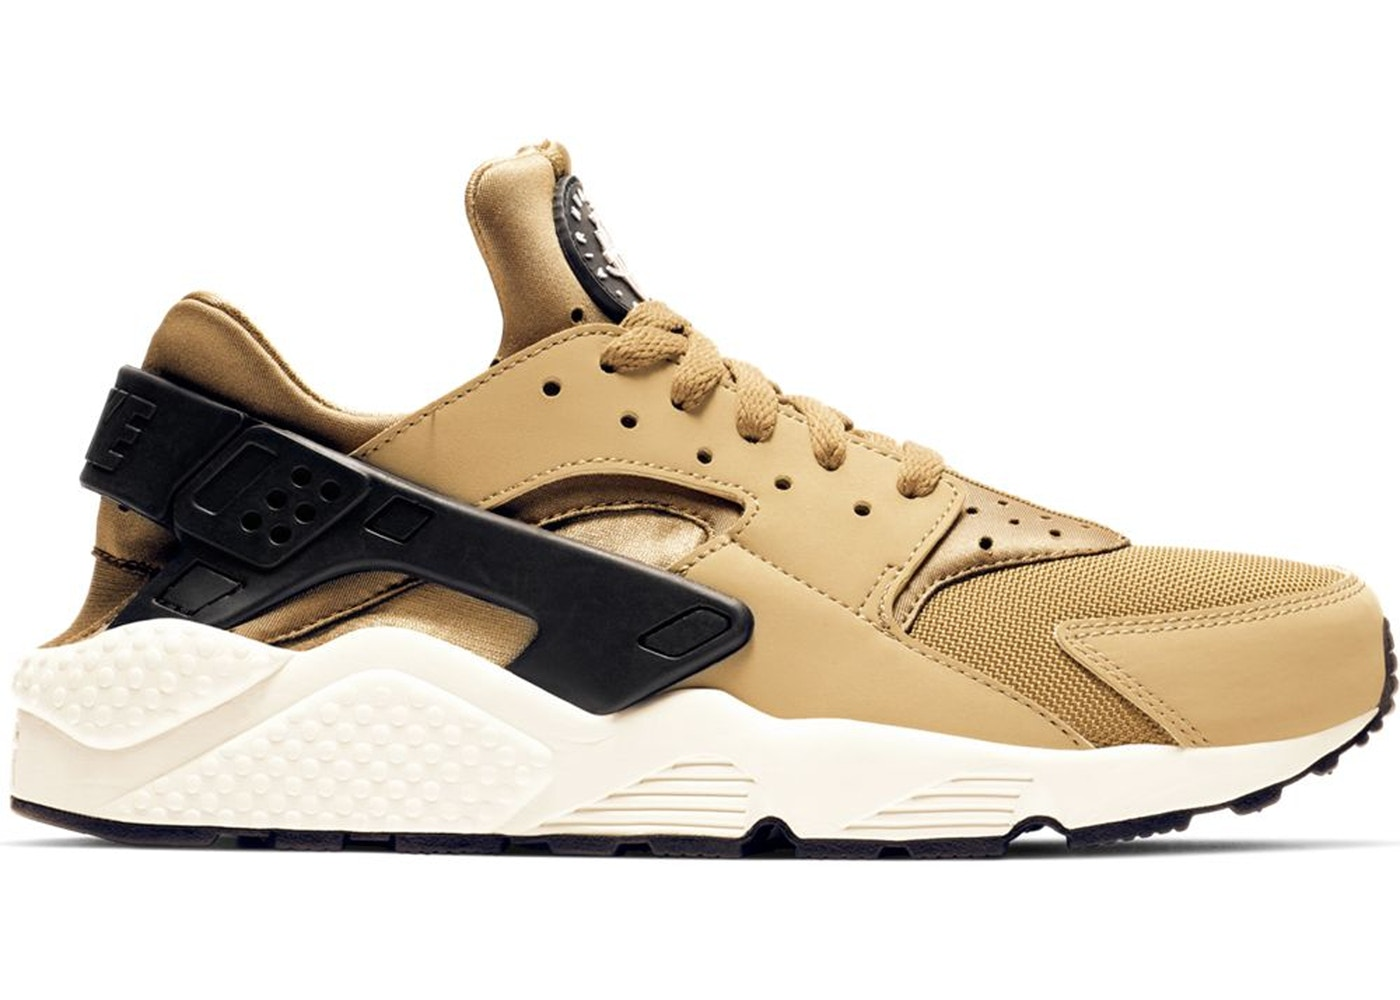 Nike Air Huarache Run Golden Beige Parachute Beige 318429 205